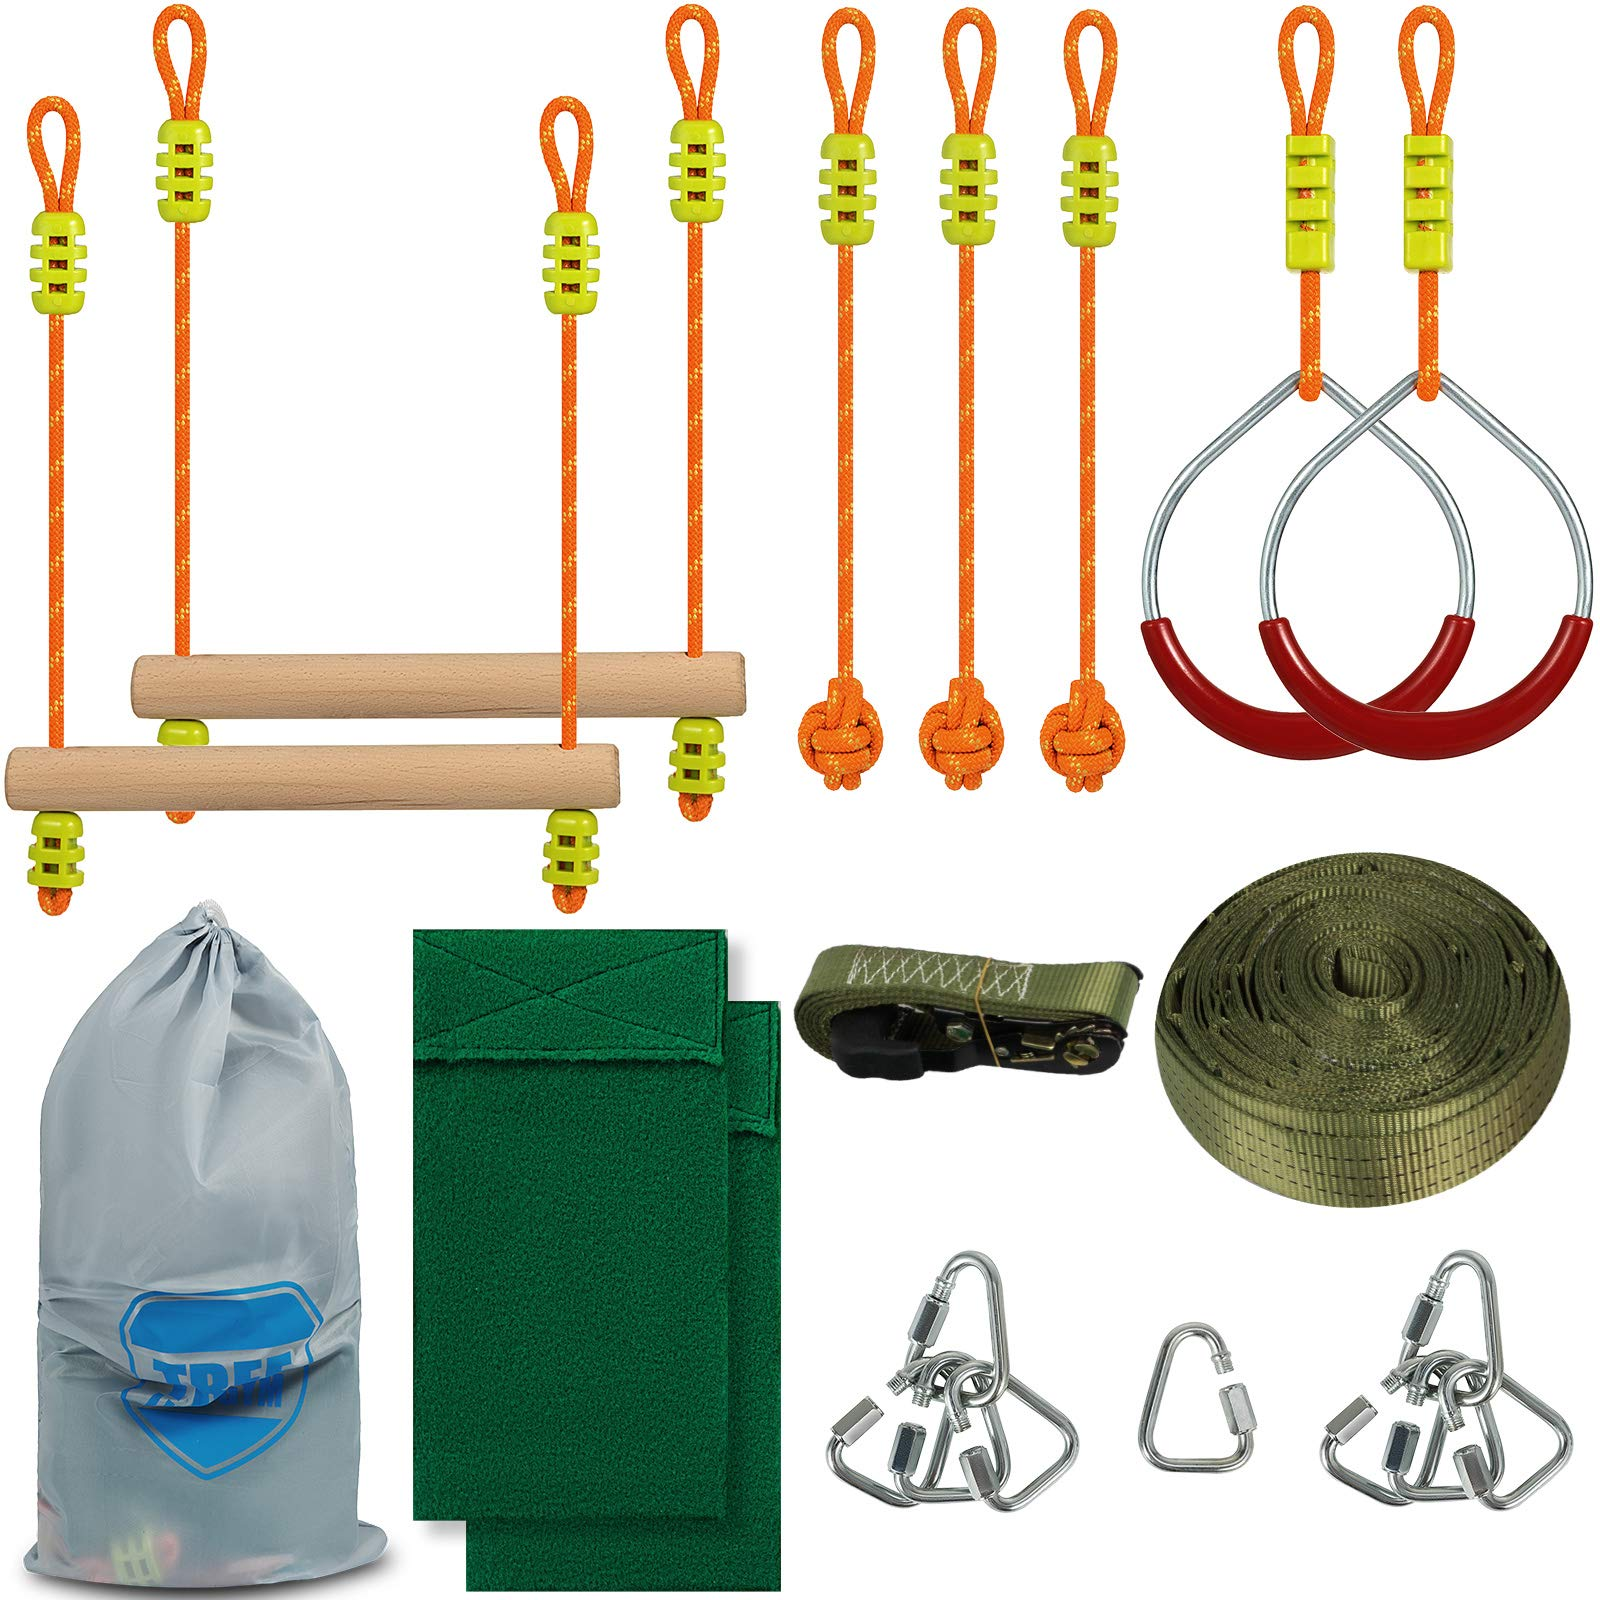 Popsport Ninja Line 45ft Monkey Bar Kit with 7 Hanging Obstacles Slackers Ninjia Line for Kids by Popsport